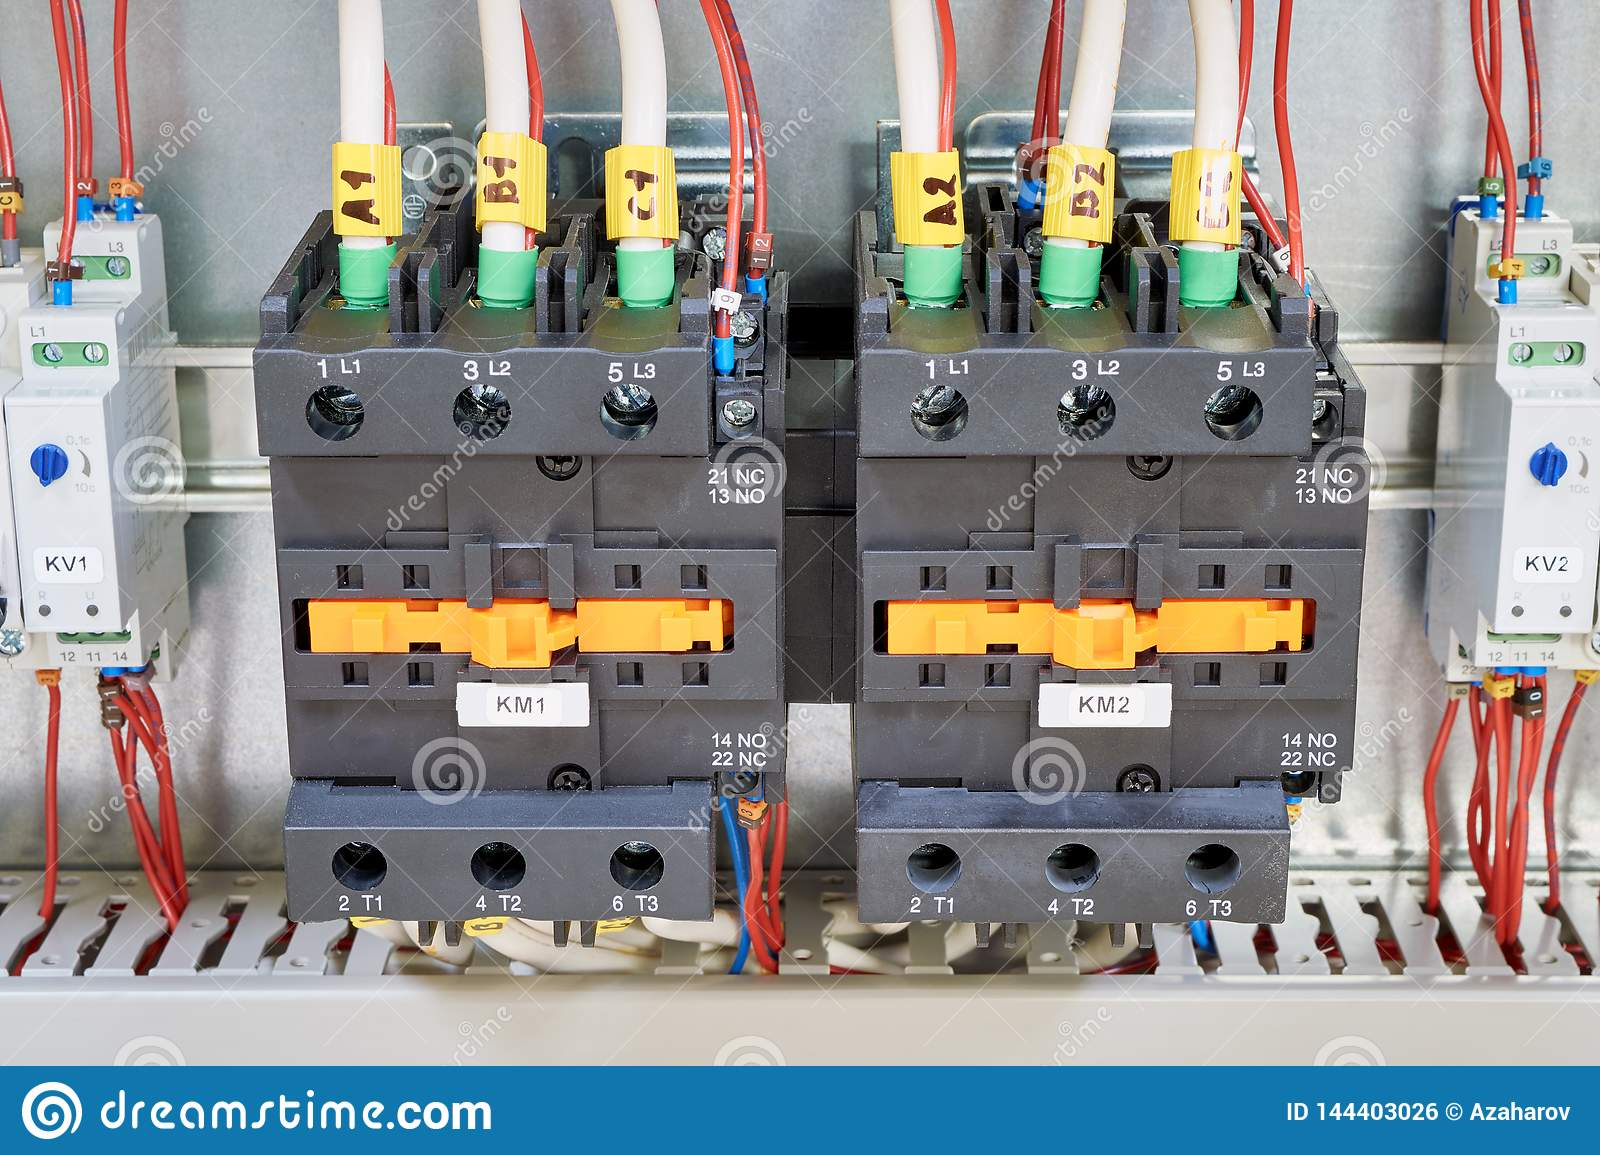 electrical cables and wires are connected to two powerful magnetic starter  or contactor  on the sides of the modular time relay with adjustment